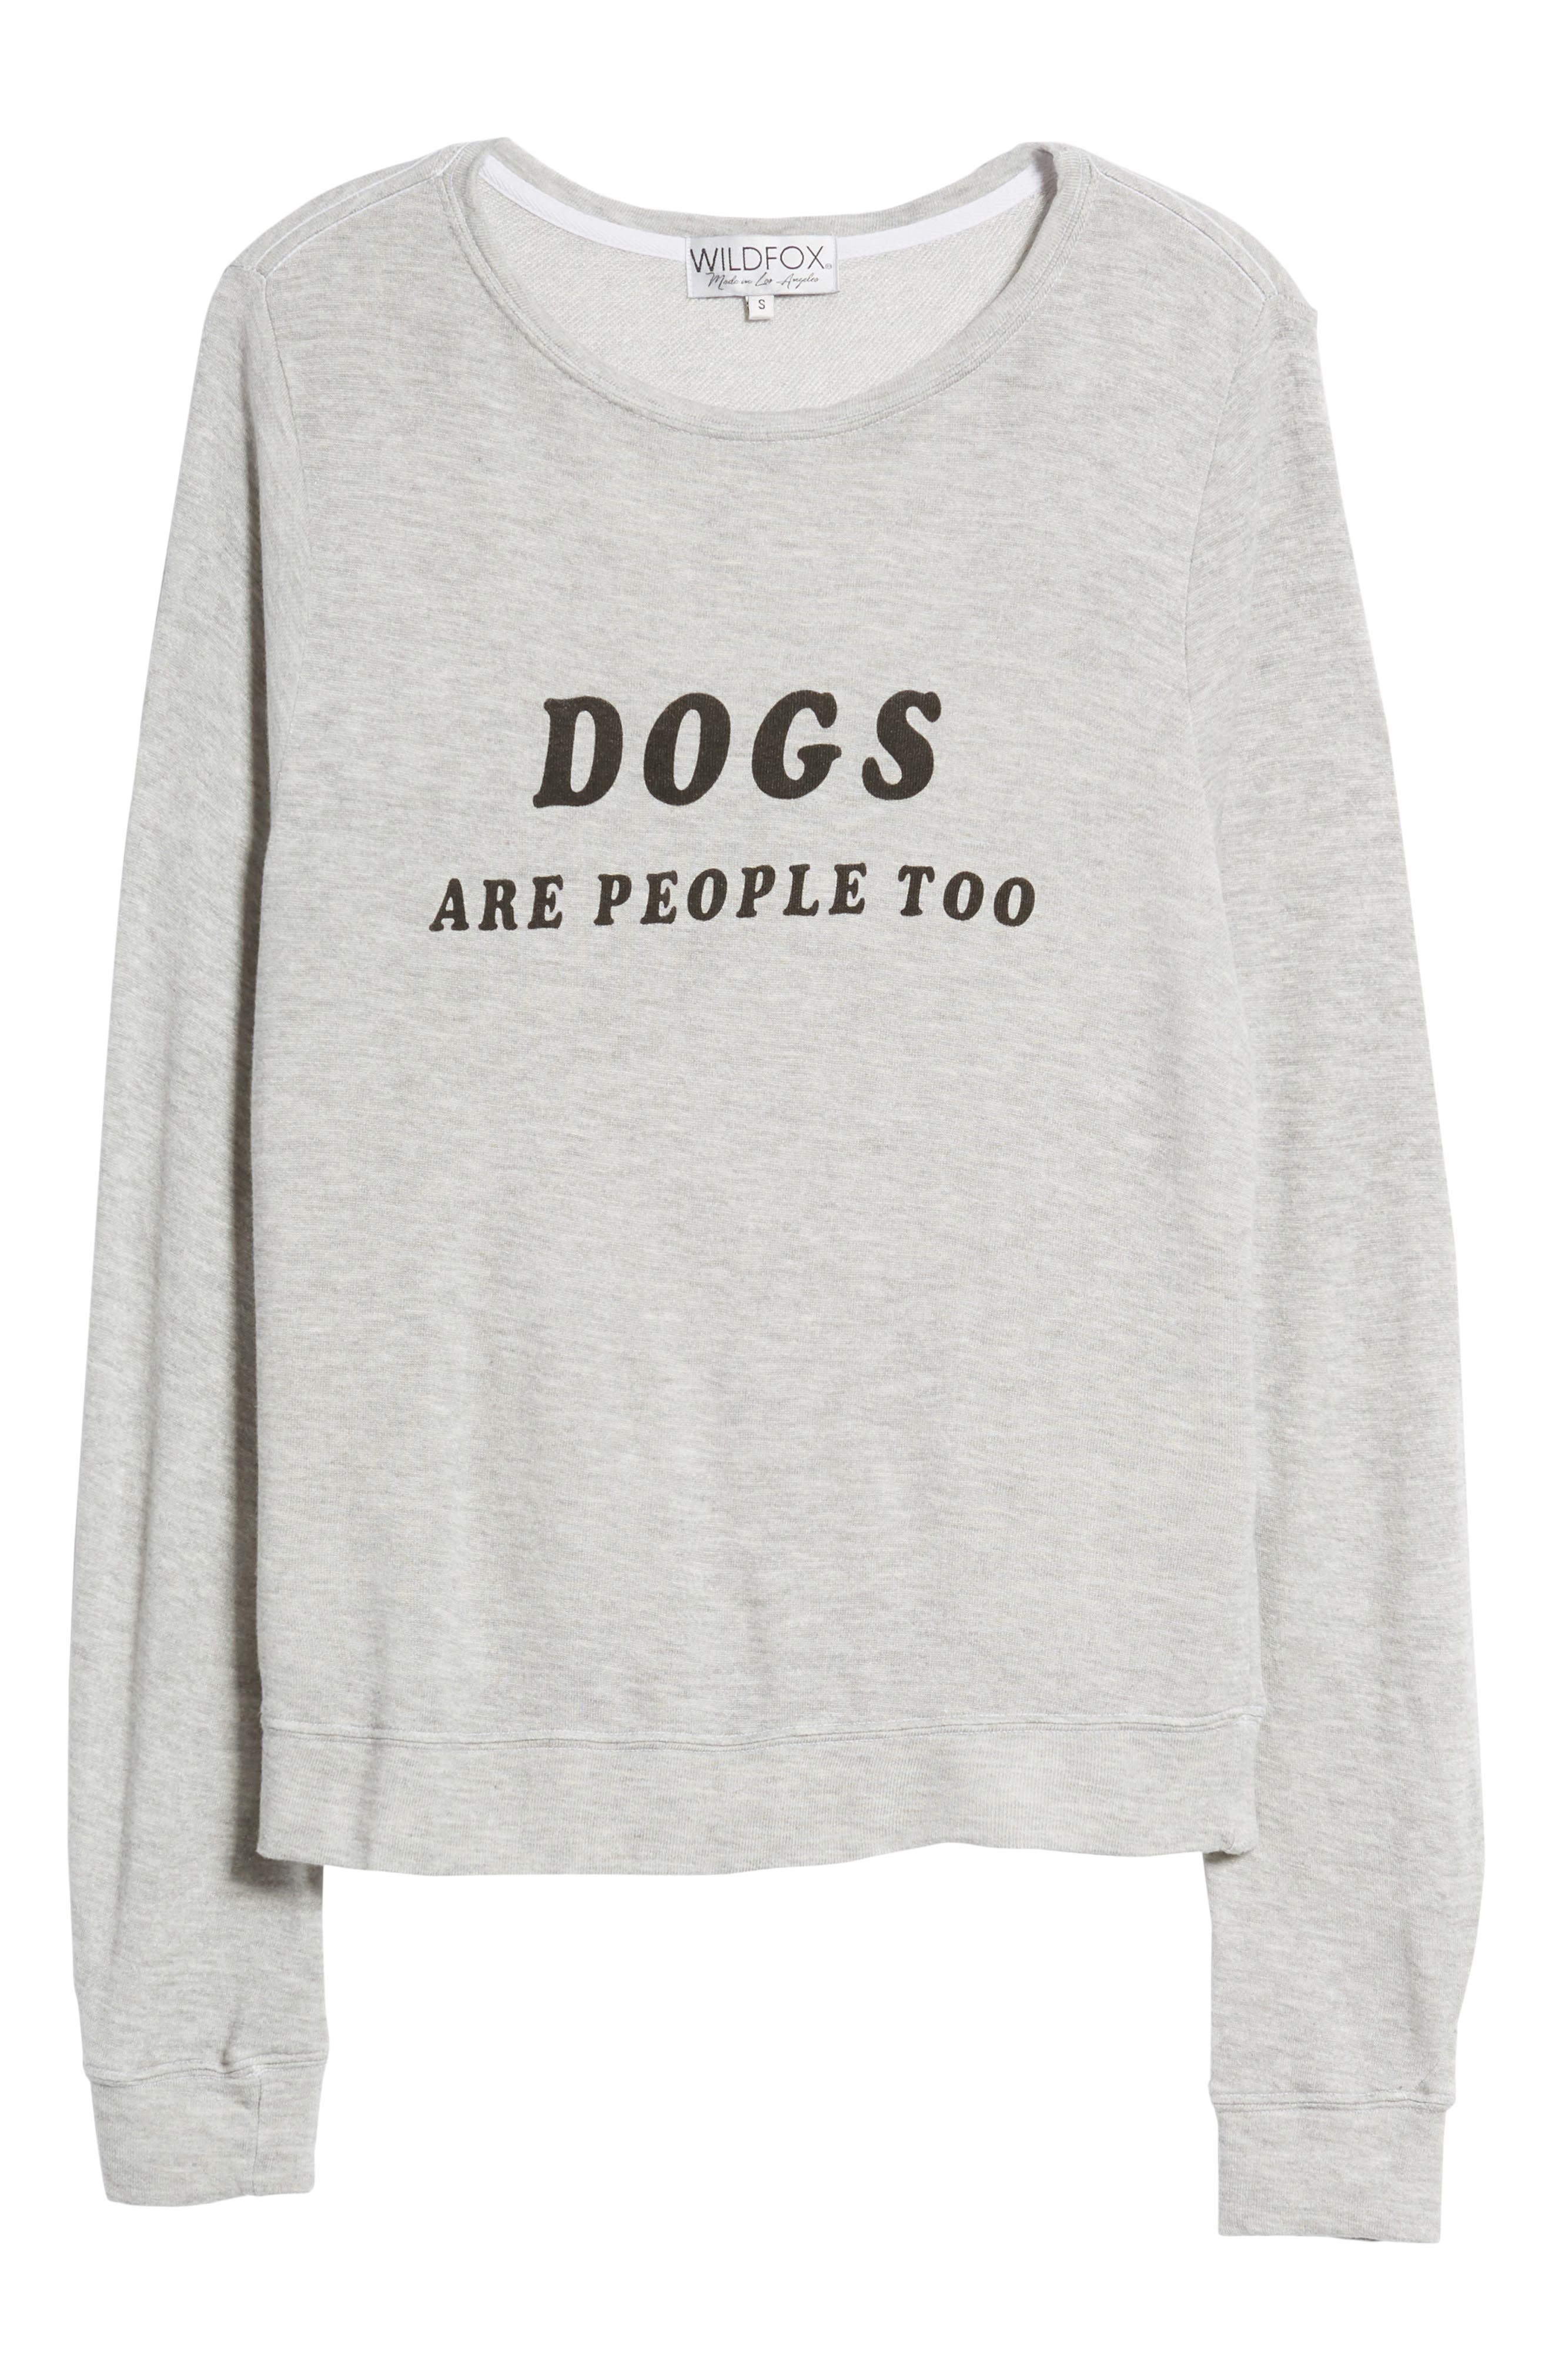 Dogs - Baggy Beach Jumper Pullover,                             Alternate thumbnail 7, color,                             020